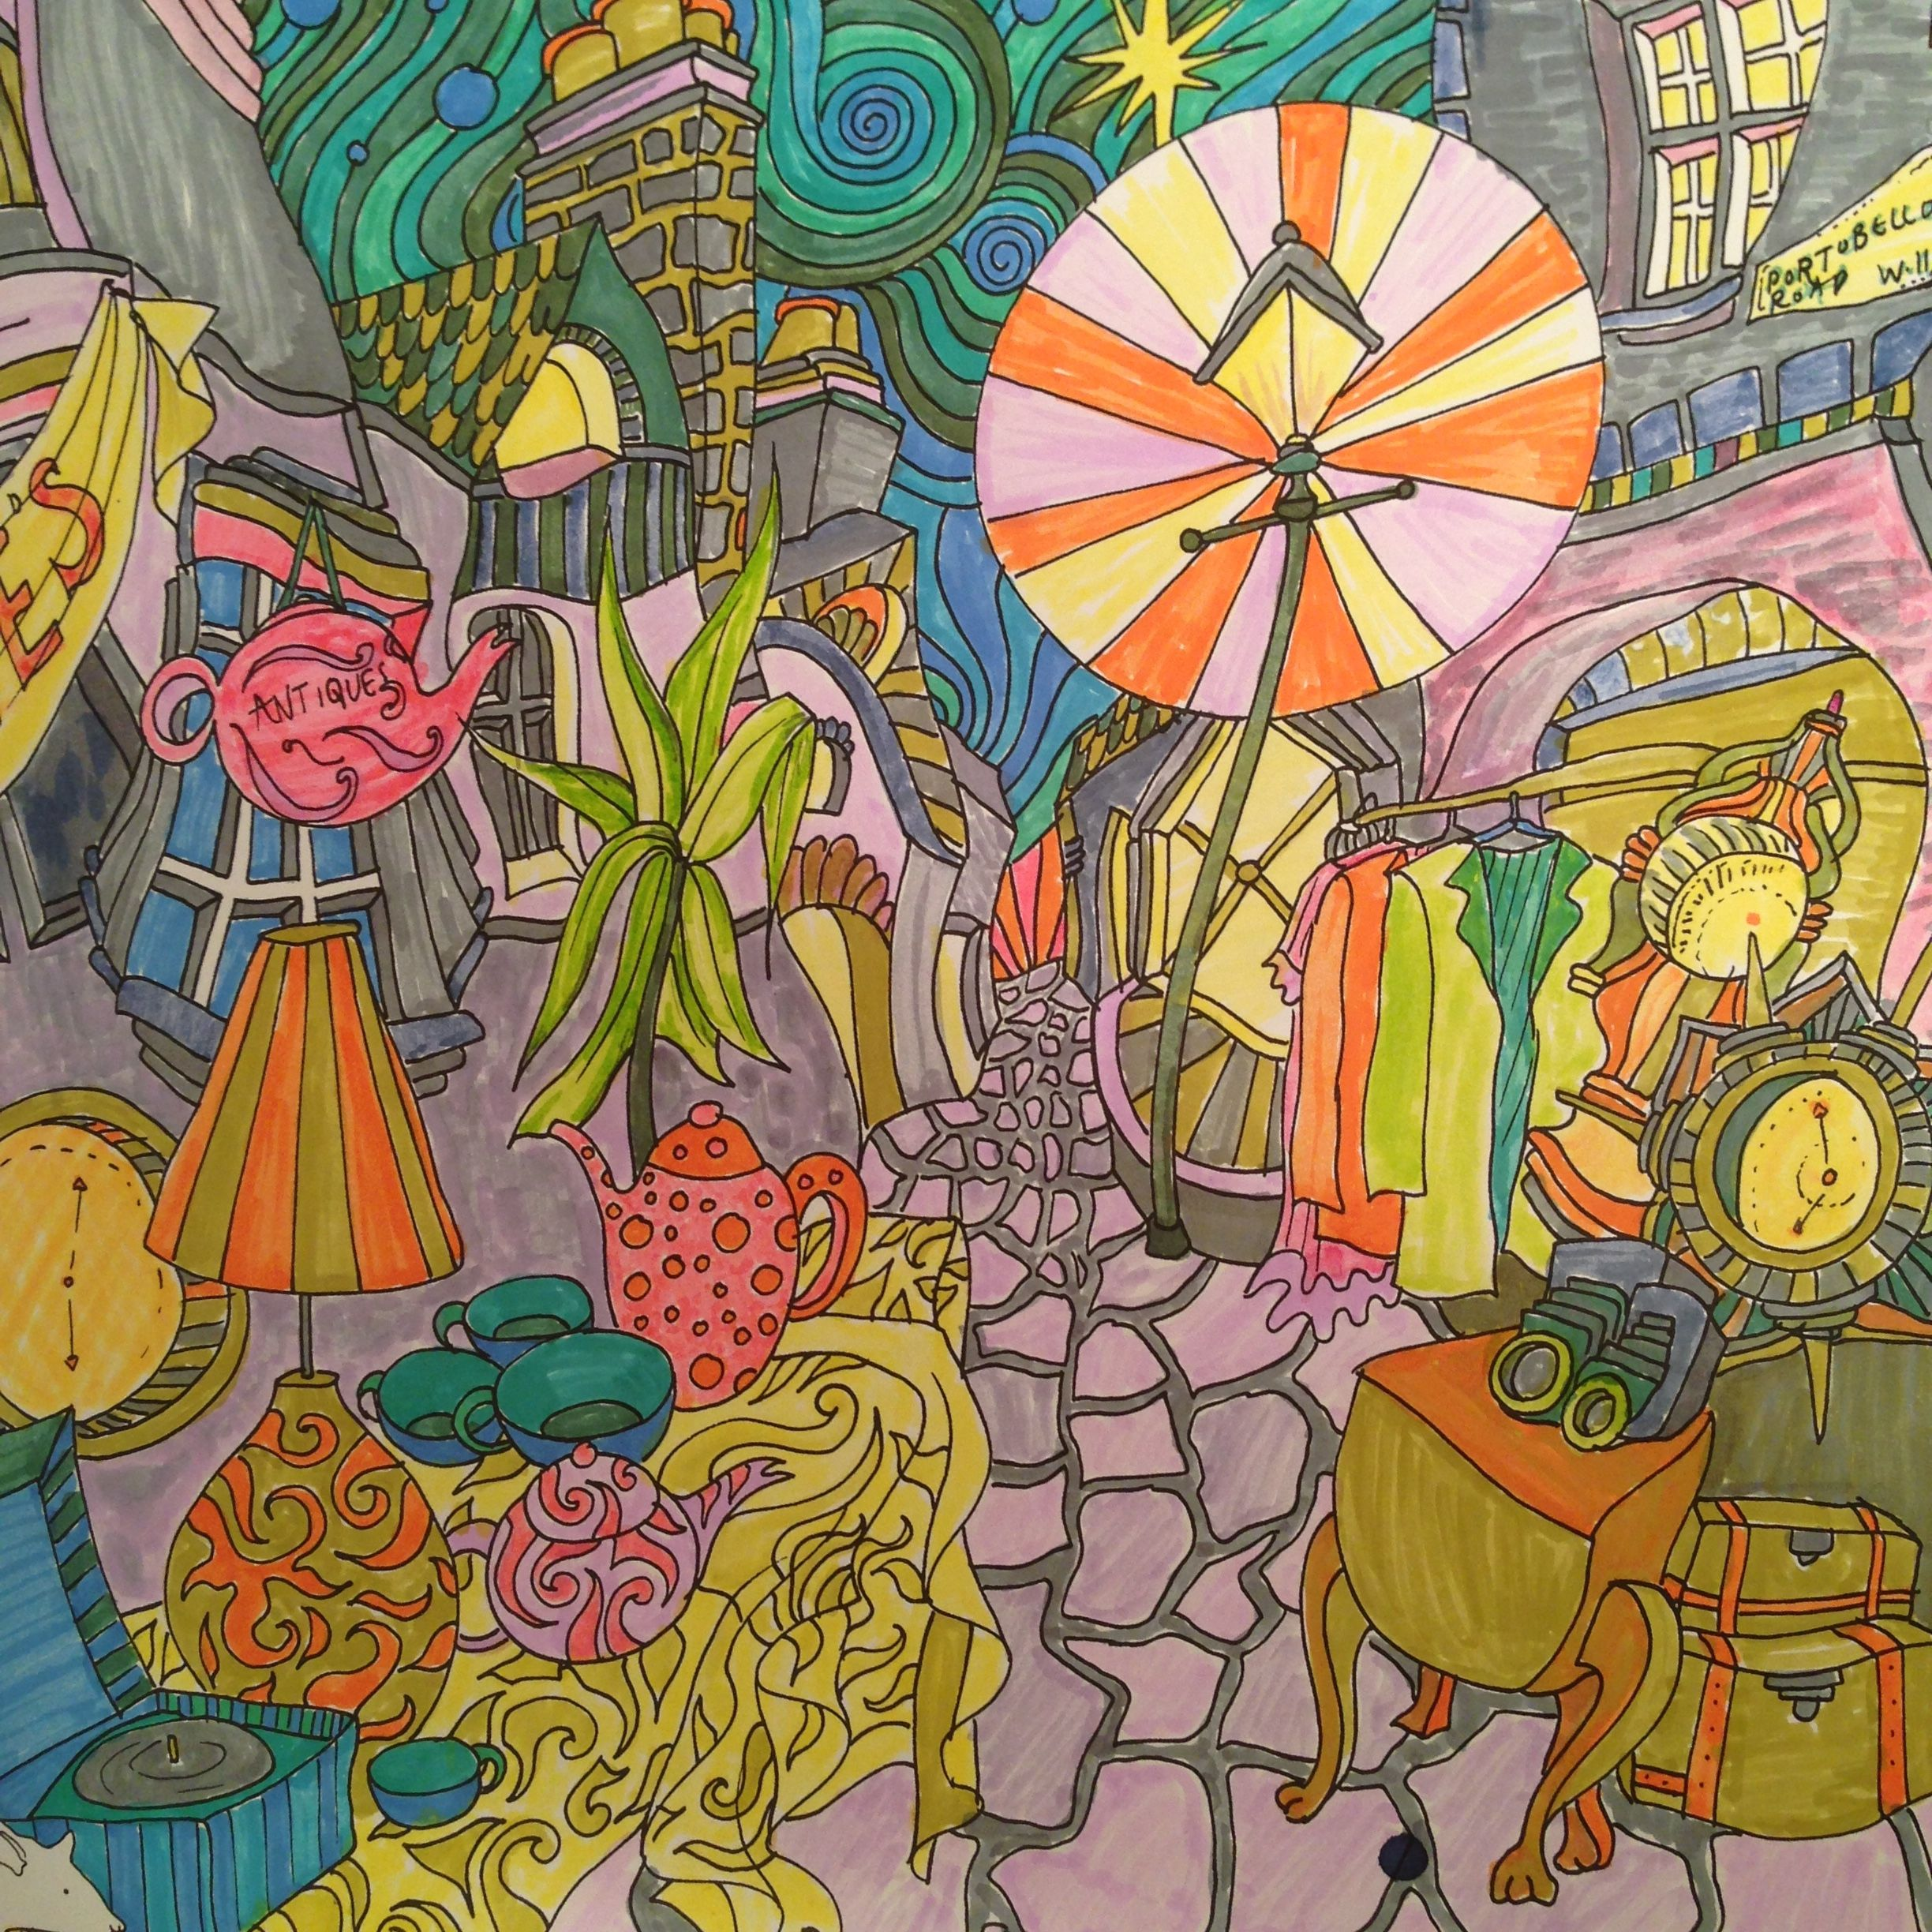 Portobello Road From The Magical City Colouring Book By Lizzie Mary Cullen Coloured